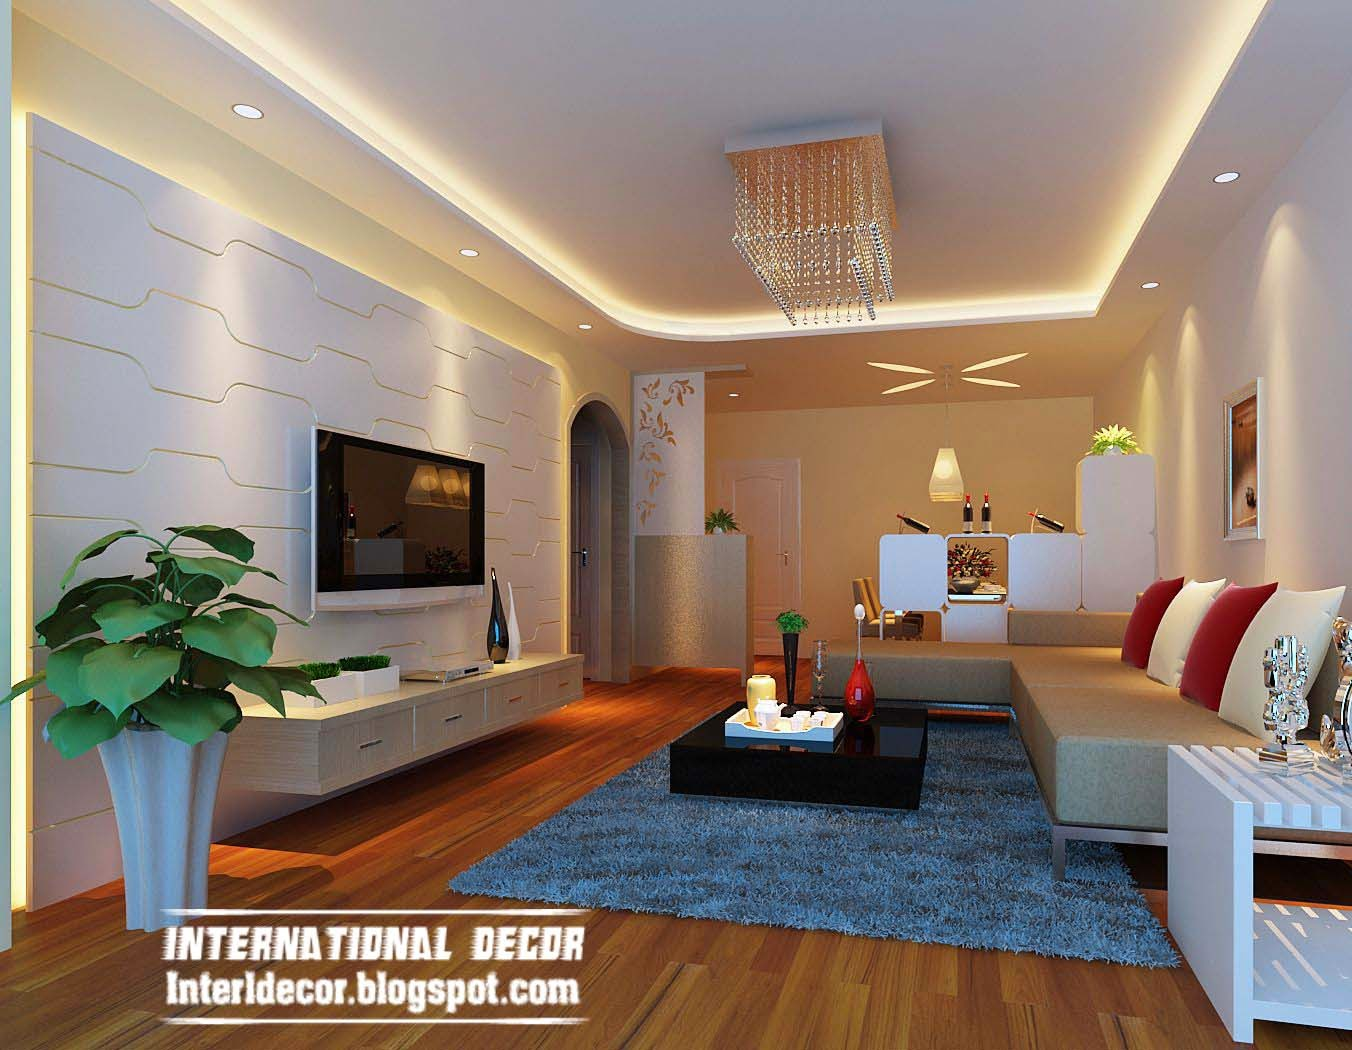 suspended ceiling pop design lighting for living room interior wall paneling 2014